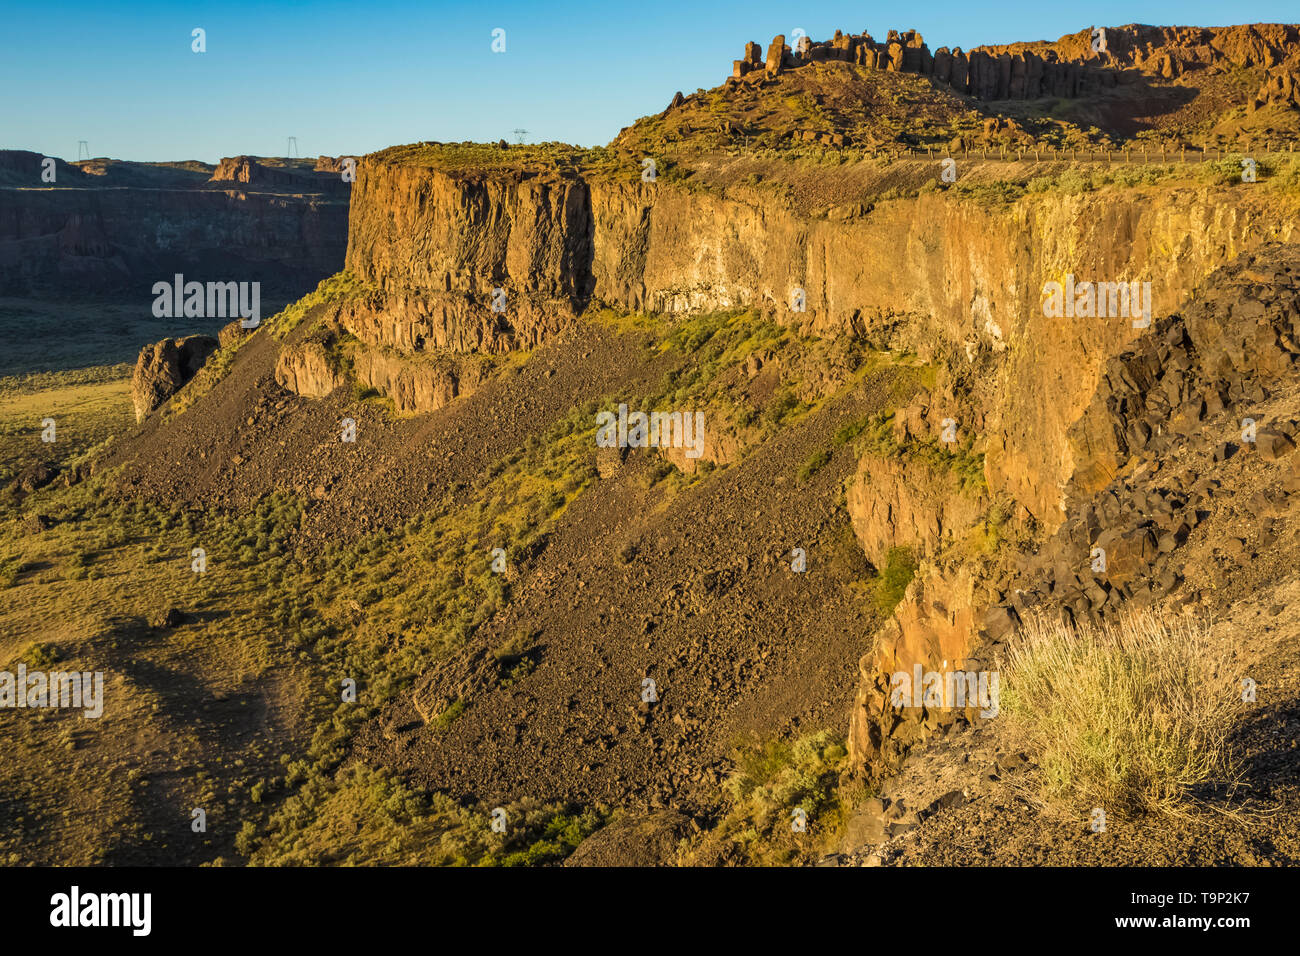 Basalt Cliffs along the edge of Frenchman Coulee, some of the channeled scablands, near Vantage, Washington State, USA - Stock Image